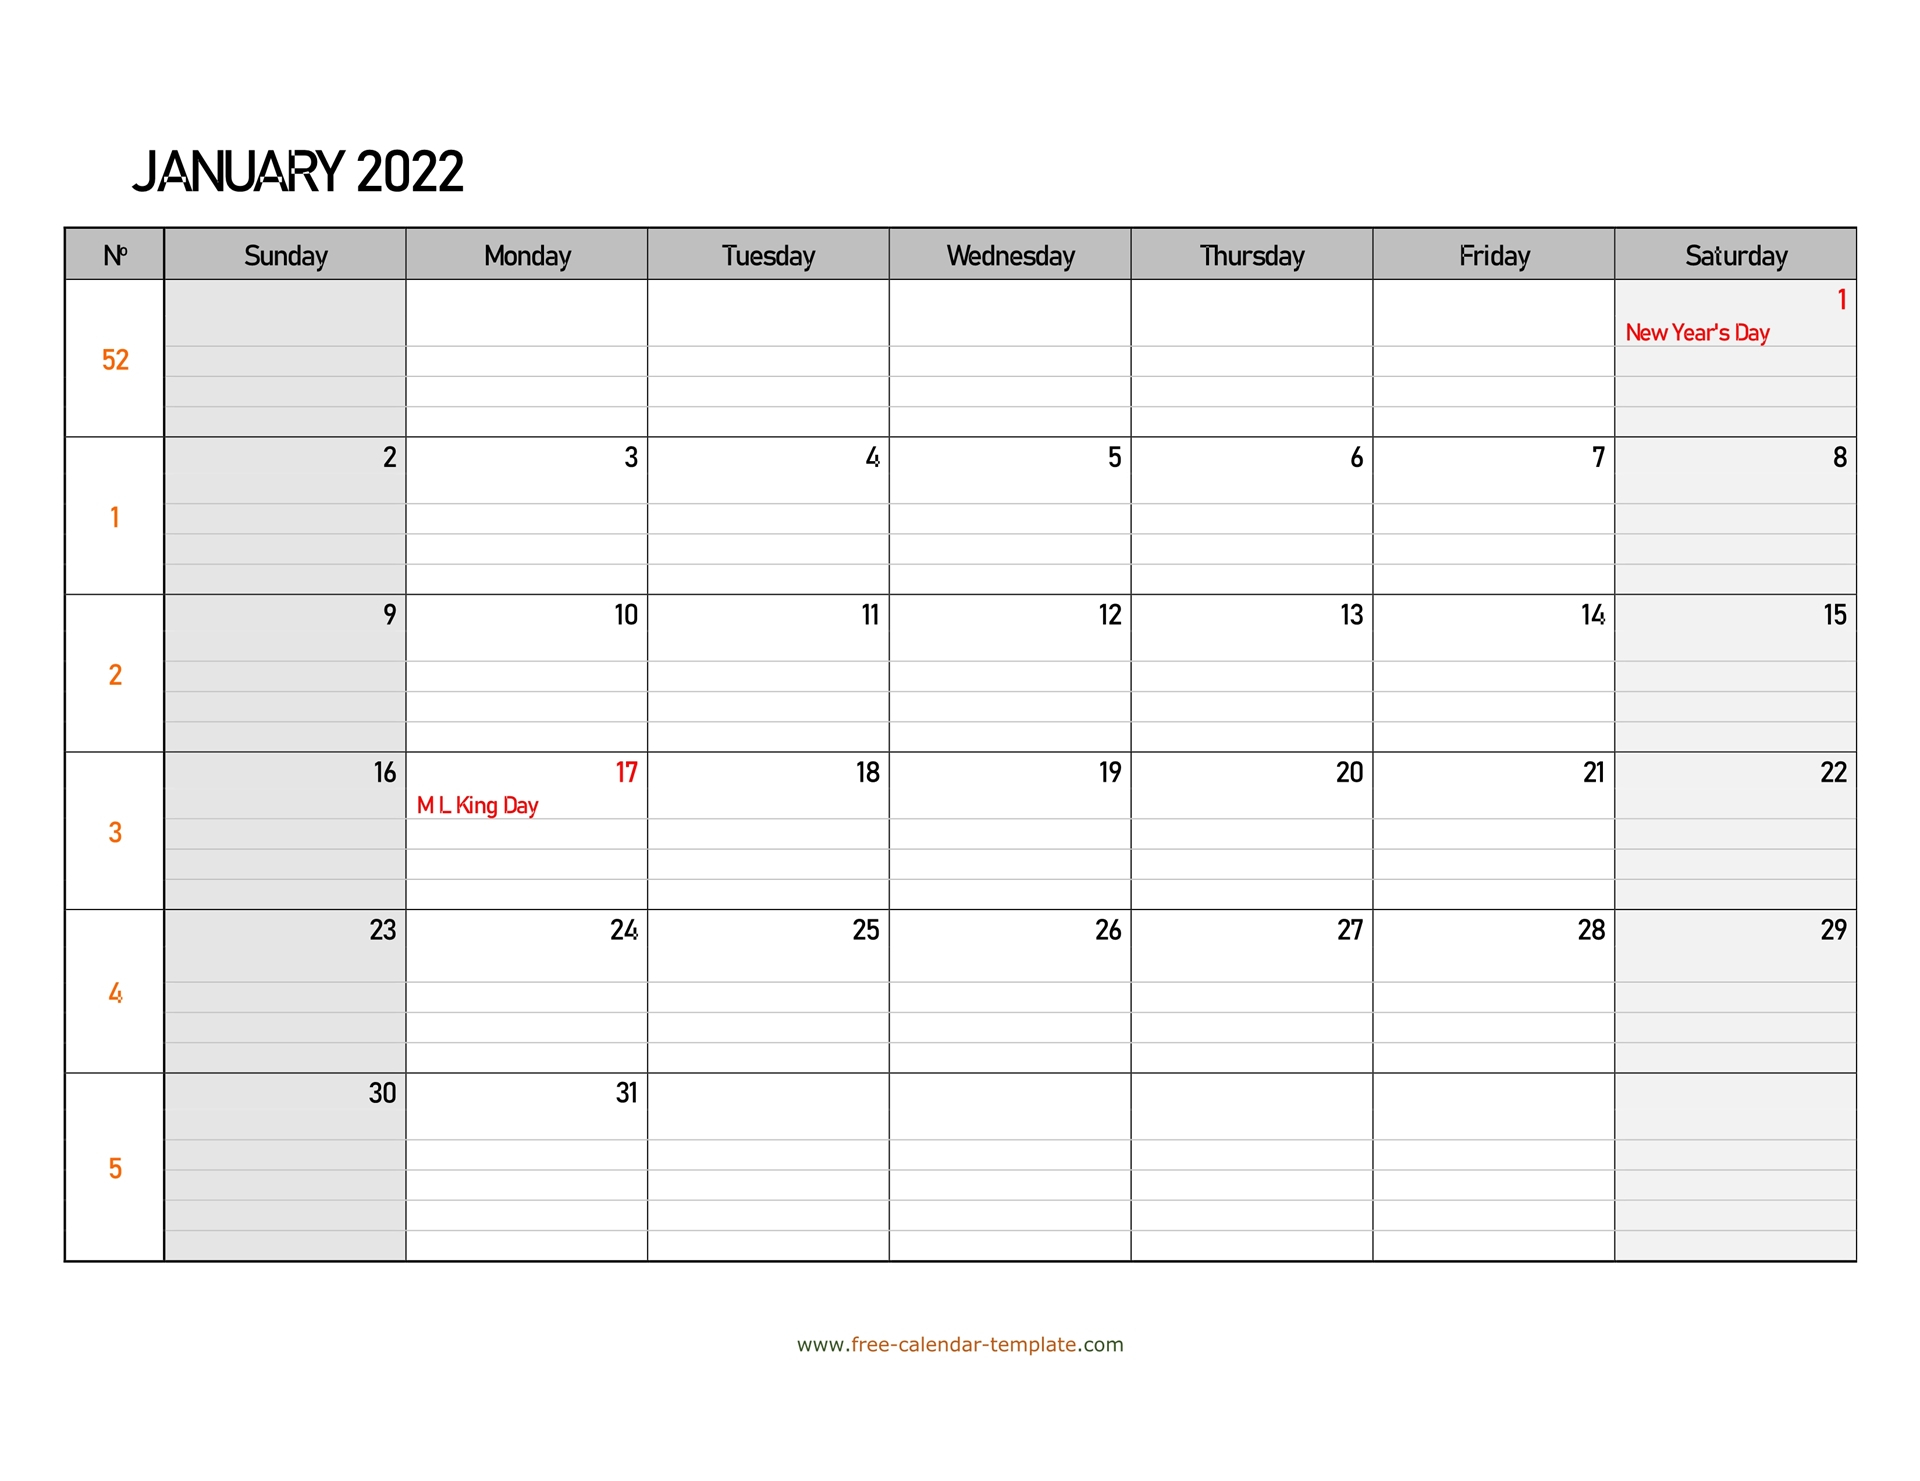 January 2022 Calendar Free Printable With Grid Lines